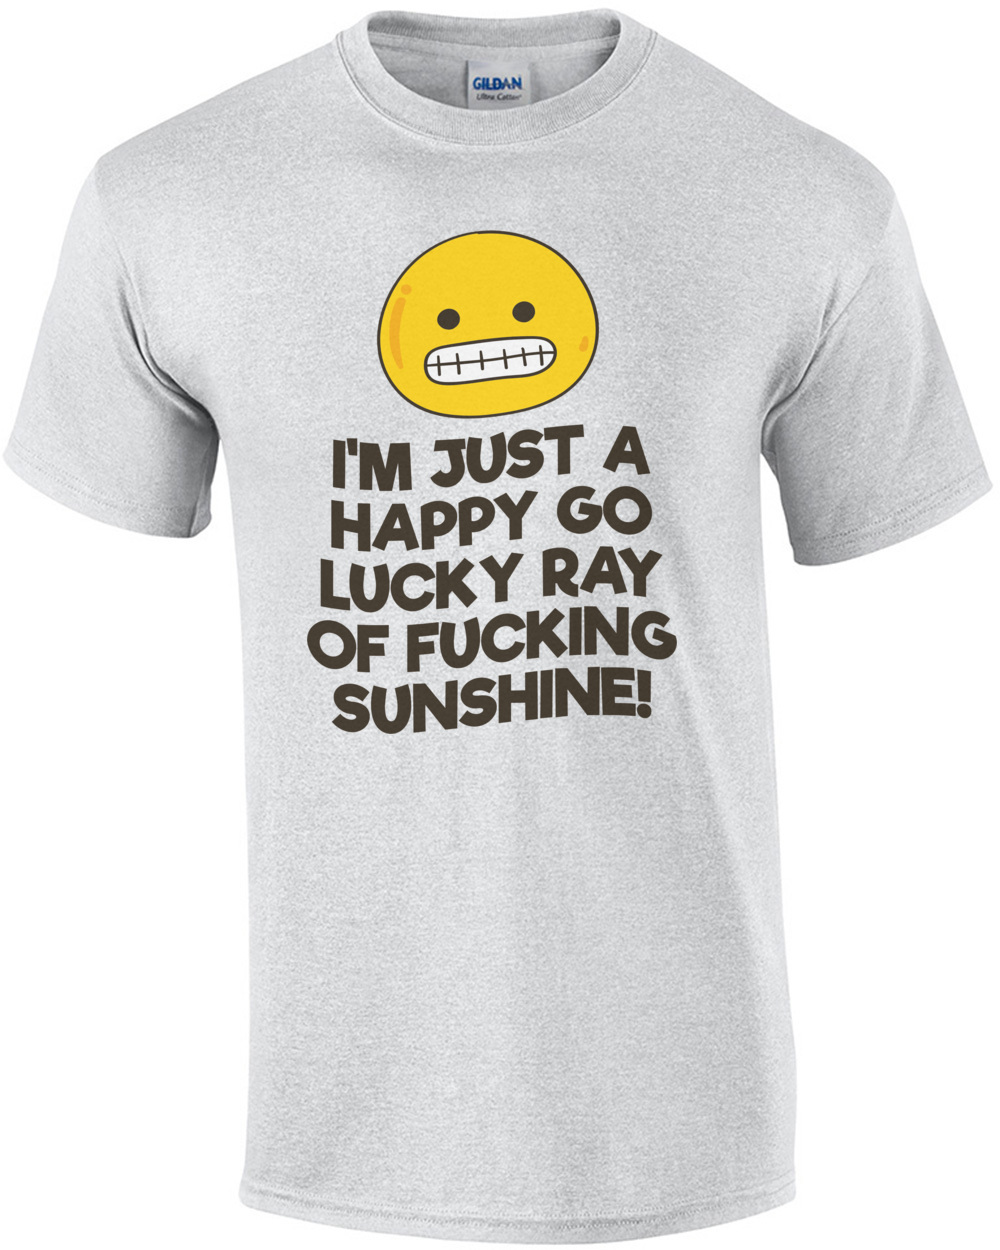 03ab5092 im-just-a-happy-go-lucky-ray-of-fucking-sunshine-tshirt-mens-regular-ash.jpg